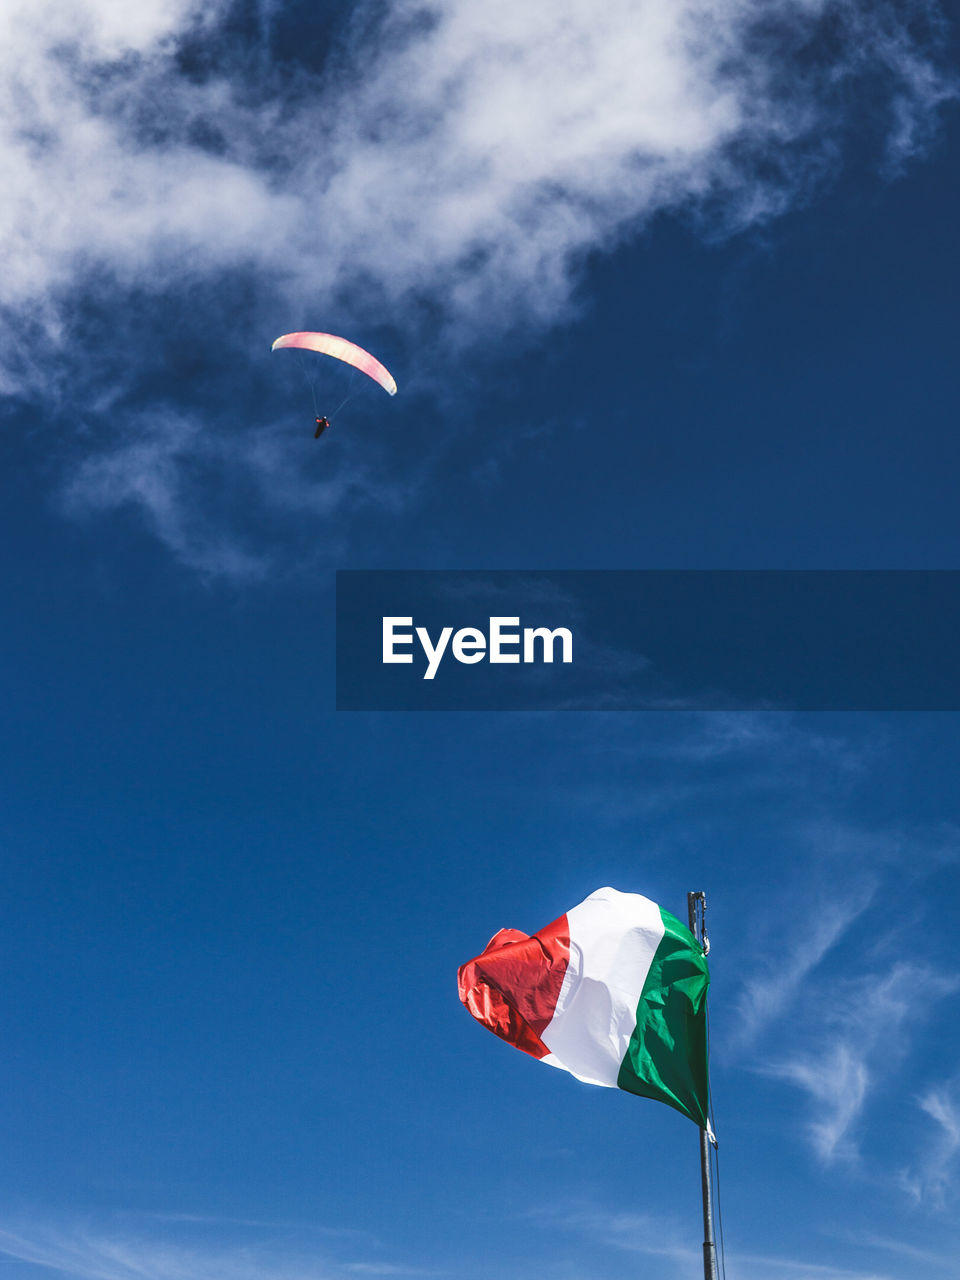 sky, nature, flag, low angle view, sport, day, wind, cloud - sky, environment, leisure activity, parachute, red, lifestyles, flying, unrecognizable person, patriotism, real people, adventure, freedom, outdoors